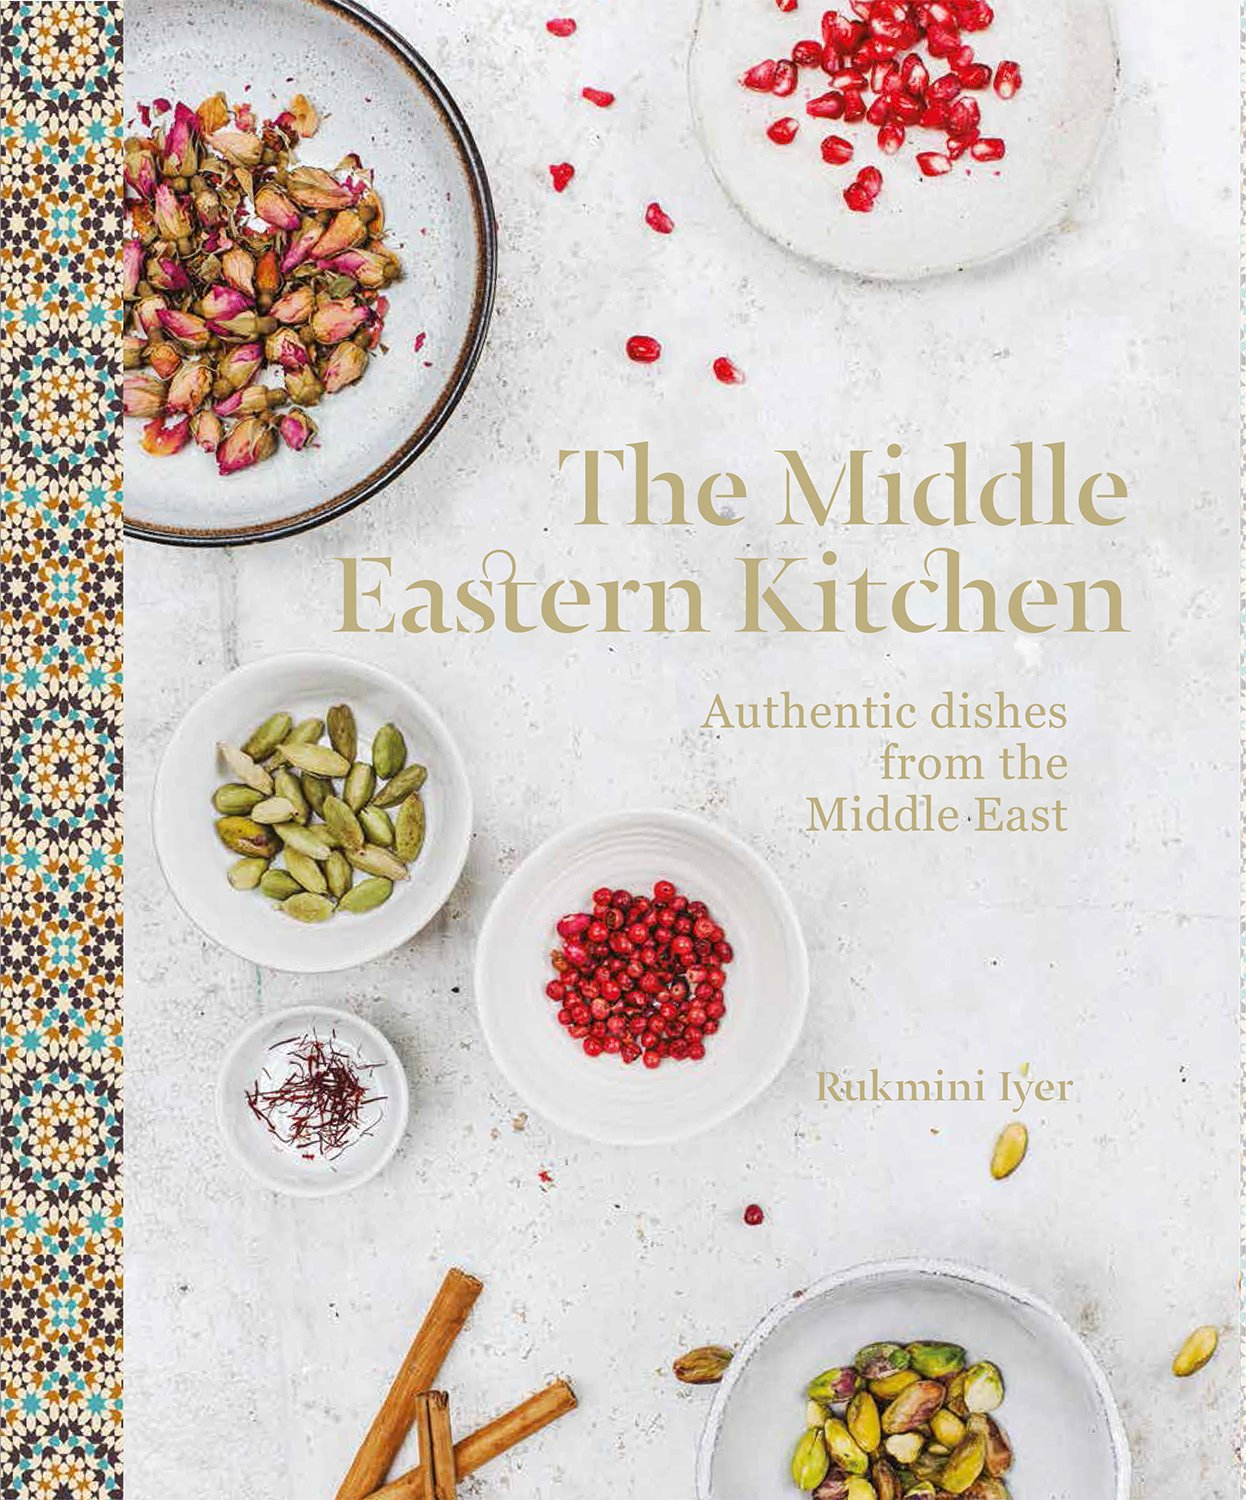 Middle Eastern Kitchen: Authentic Dishes from the Middle East by Parragon Inc